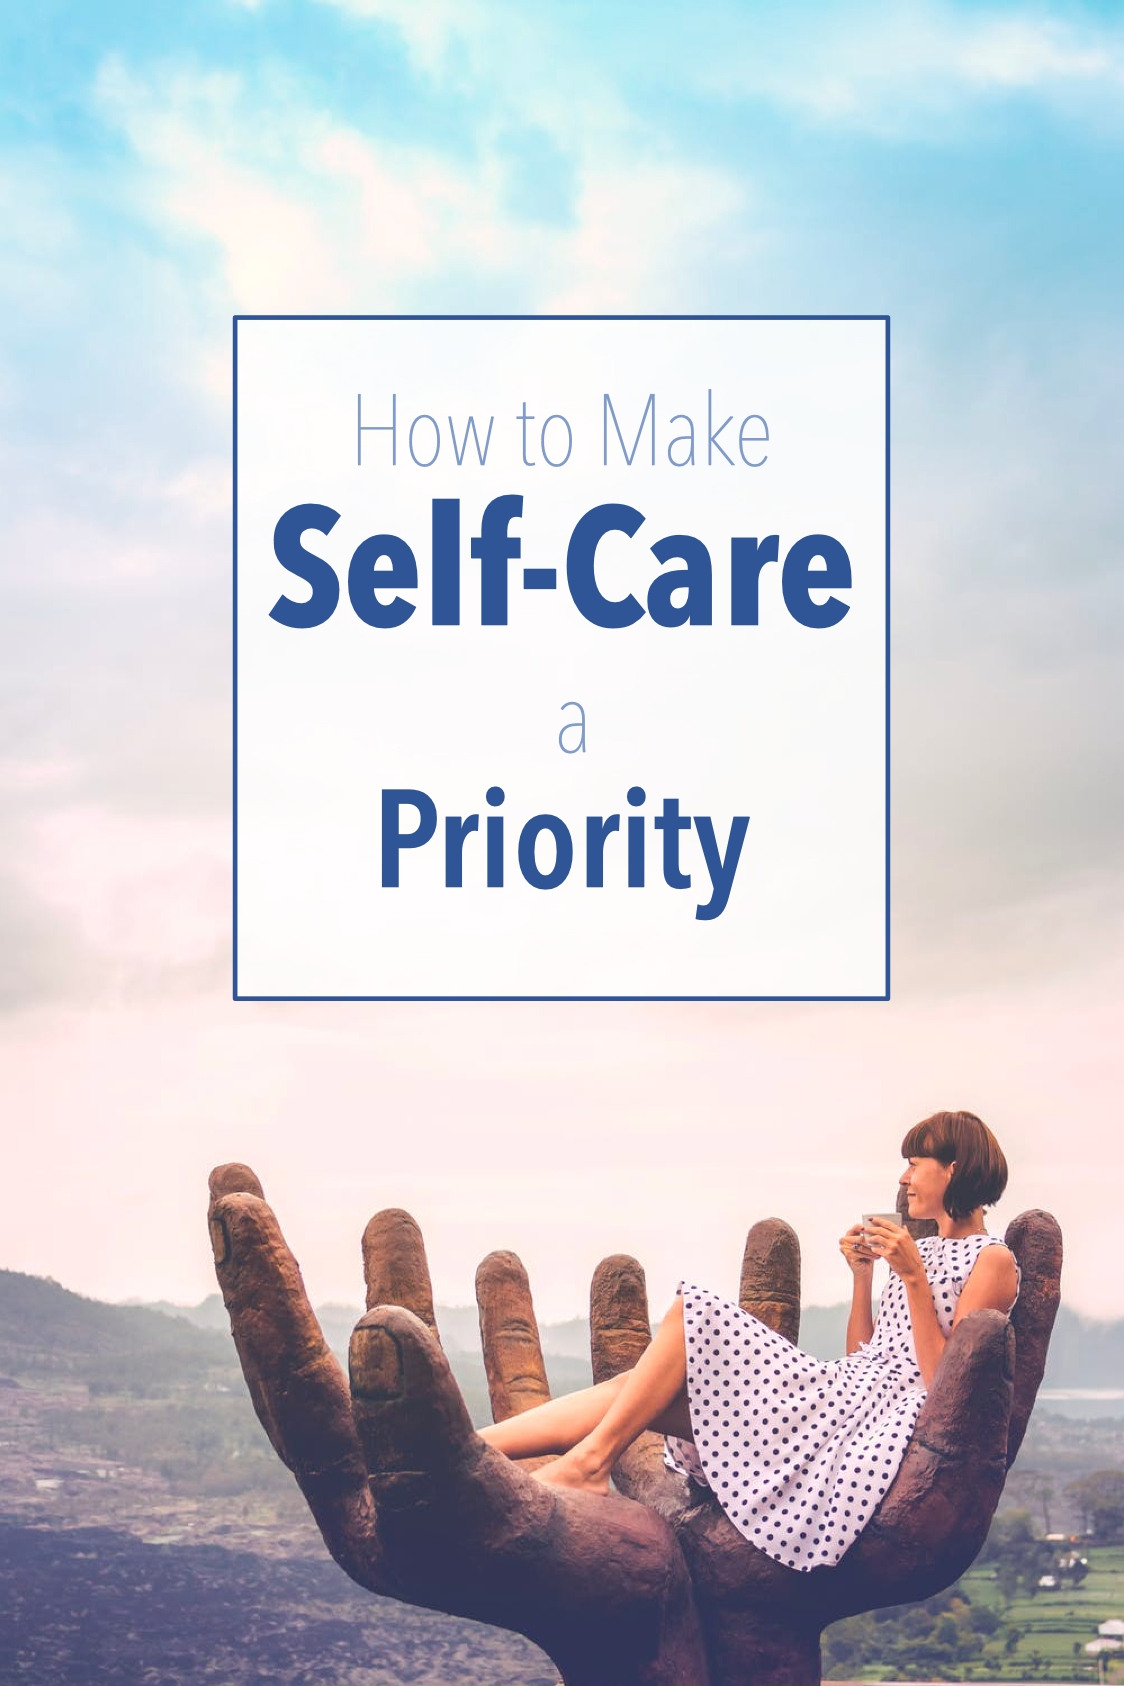 Pin Design - How to Make Self-Care a Priority